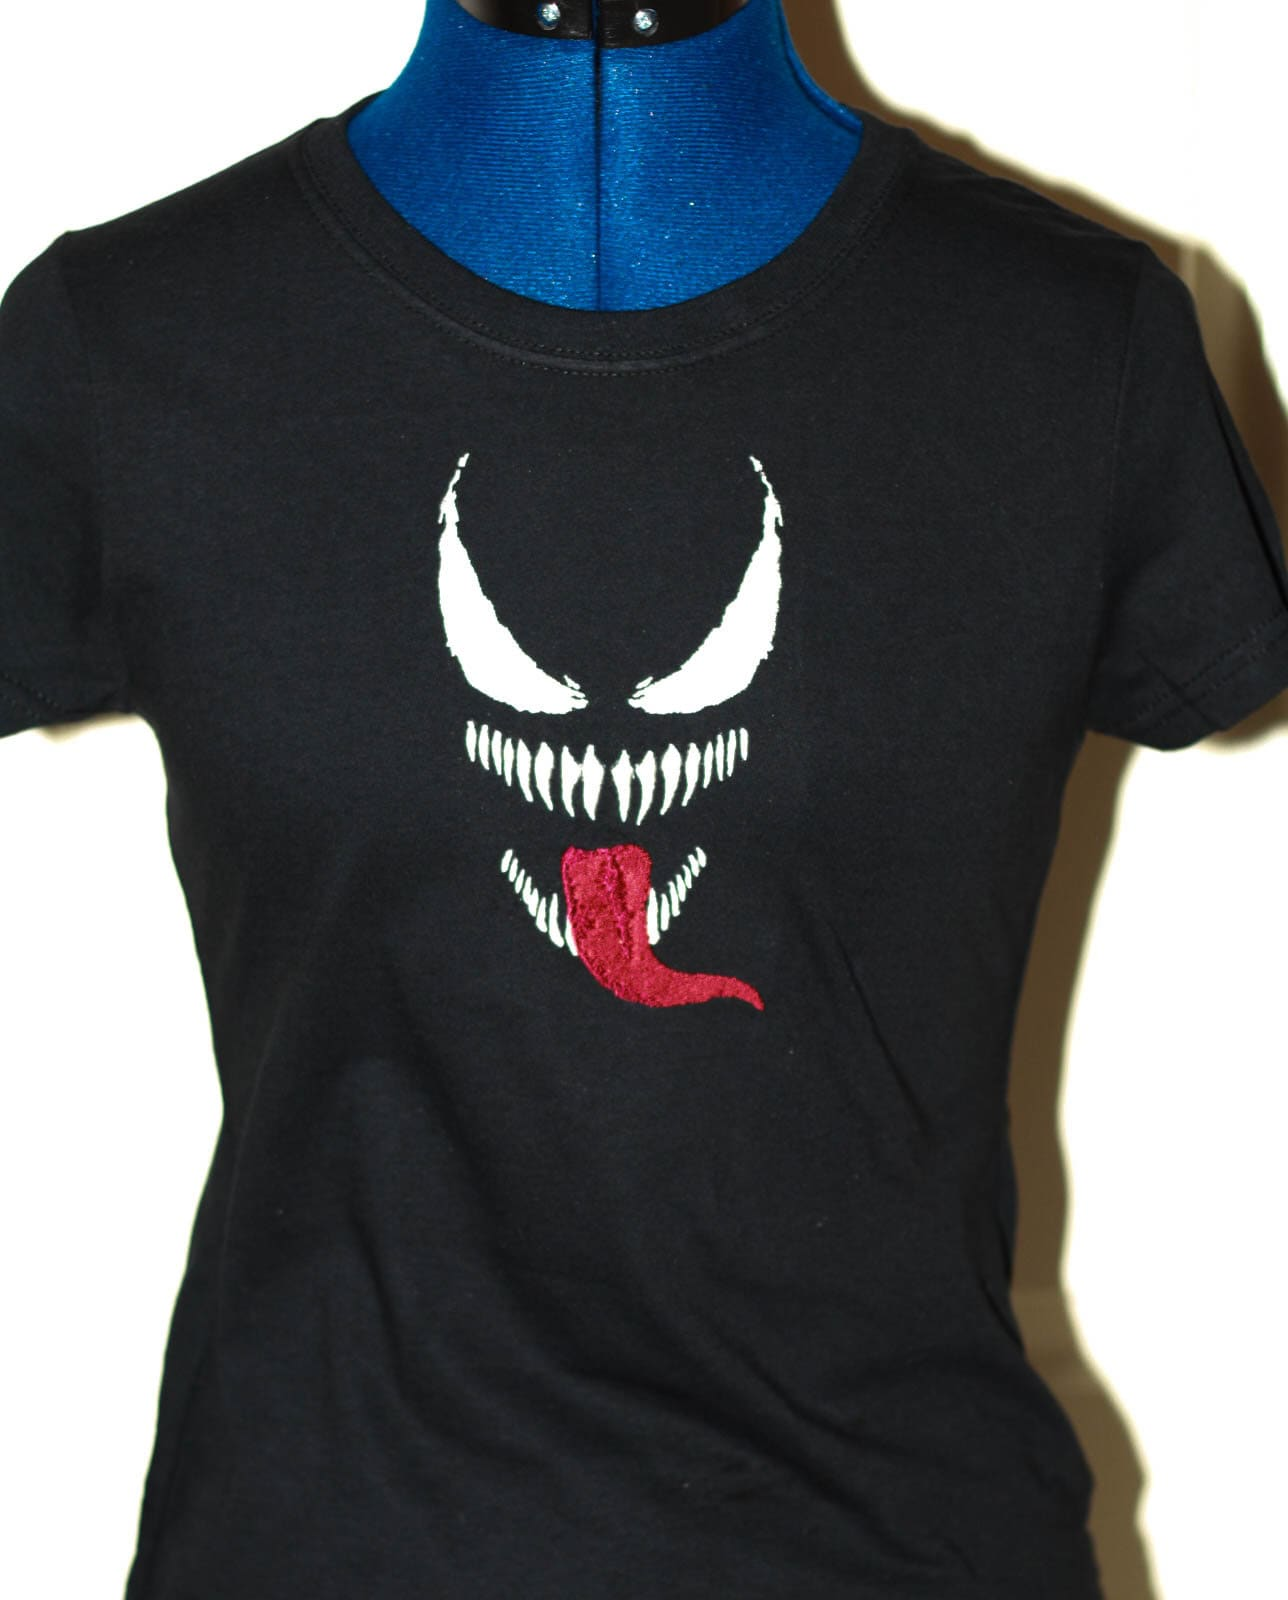 Custom Personalized Embroidered T Shirt Spiderman Movie Venom Etsy